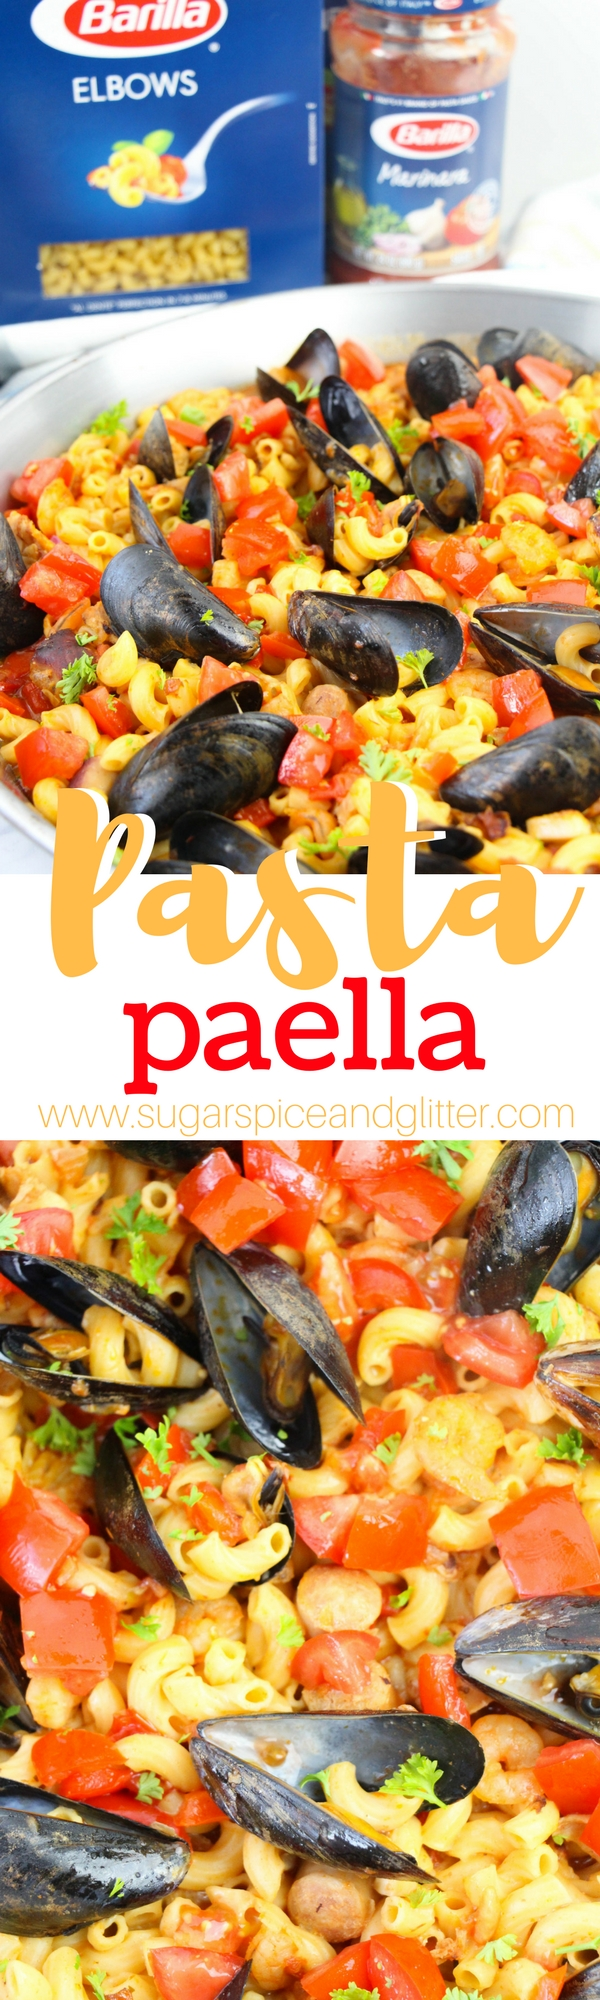 Pasta Paella, a delicious twist on a Classic Paella recipe using pasta to make it more kid-friendly (and quicker to make!) An awesome seafood recipe